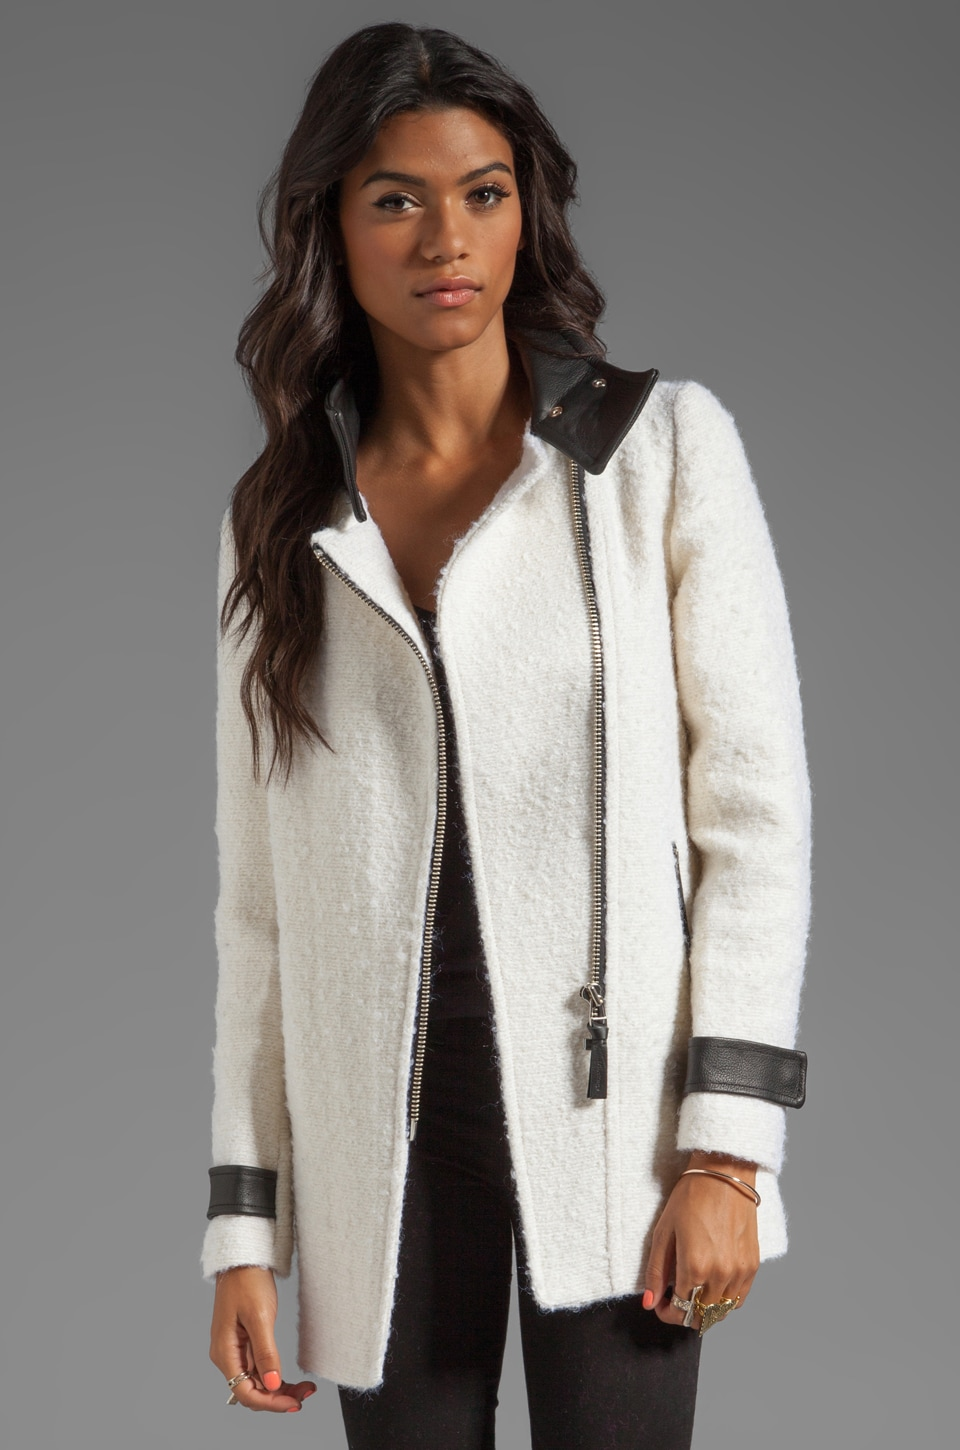 Mackage Kitty Novelty Boucle Wool Coat in Off White